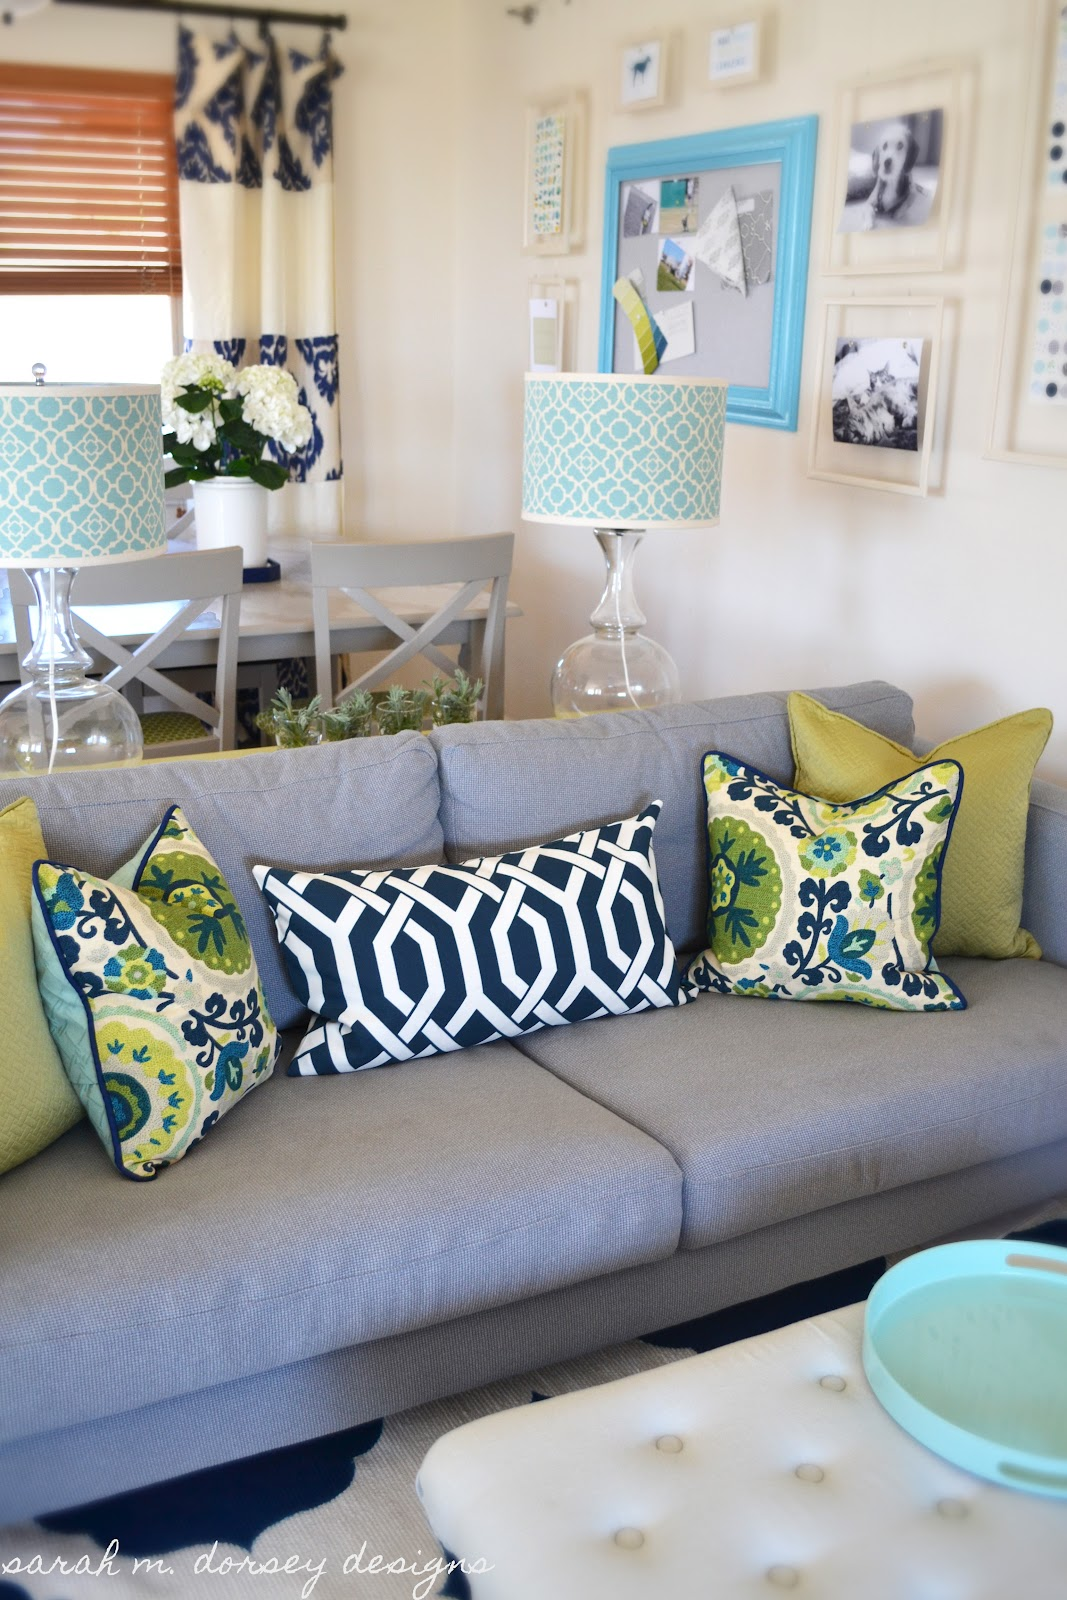 Sarah m dorsey designs pillow shams for the living room Decorative pillows living room